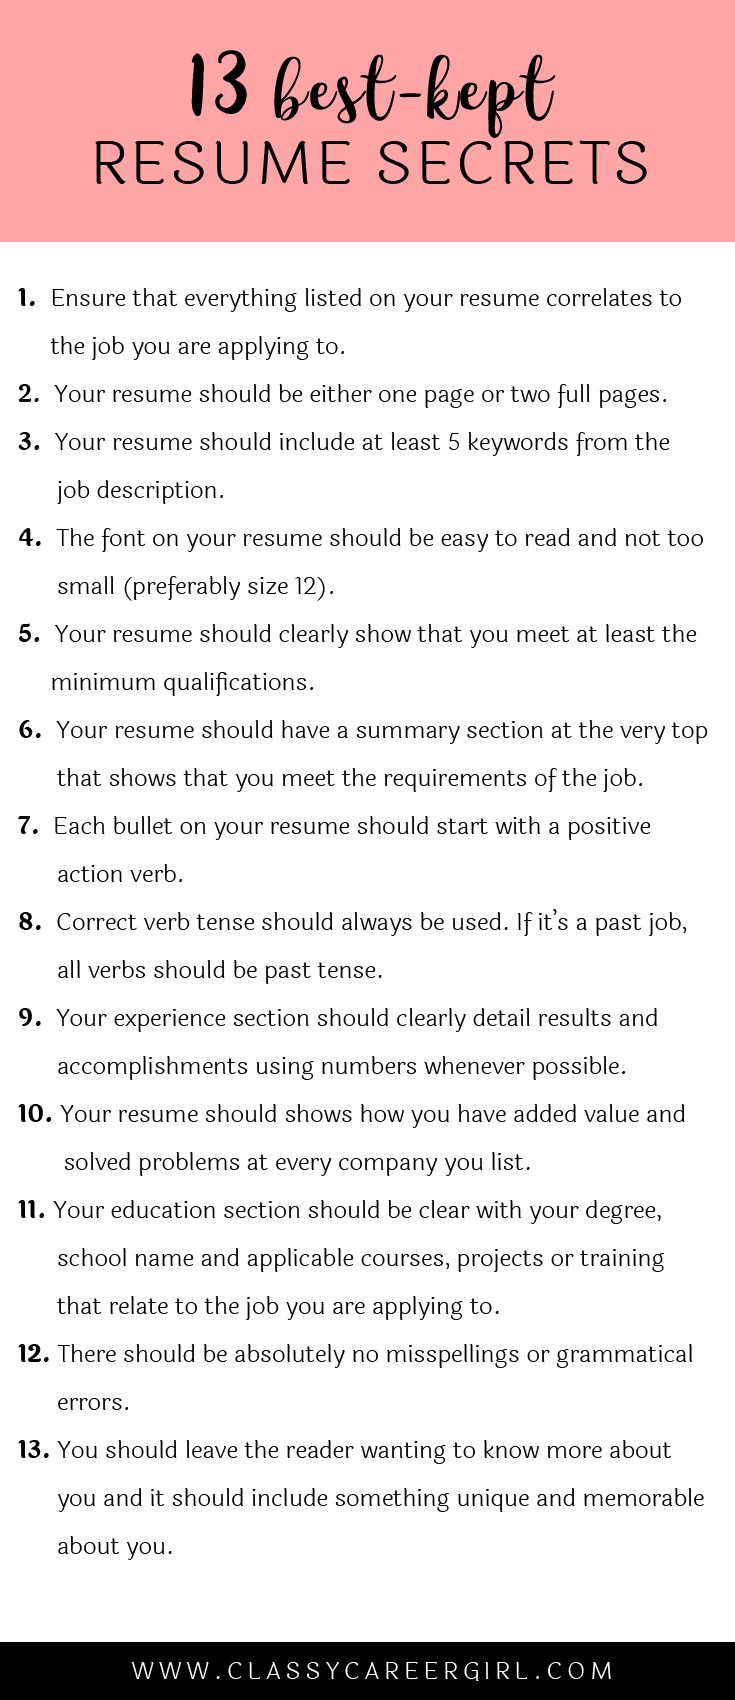 Opposenewapstandardsus  Personable  Ideas About Resume On Pinterest  Cv Format Resume Cv And  With Heavenly Some Hiring Managers Will Toss Your Resume Out If You Dont Know These  With Breathtaking Creative Resume Layouts Also Good Example Of A Resume In Addition Guidance Counselor Resume And Store Clerk Resume As Well As Caretaker Resume Additionally Adjectives To Use On A Resume From Pinterestcom With Opposenewapstandardsus  Heavenly  Ideas About Resume On Pinterest  Cv Format Resume Cv And  With Breathtaking Some Hiring Managers Will Toss Your Resume Out If You Dont Know These  And Personable Creative Resume Layouts Also Good Example Of A Resume In Addition Guidance Counselor Resume From Pinterestcom